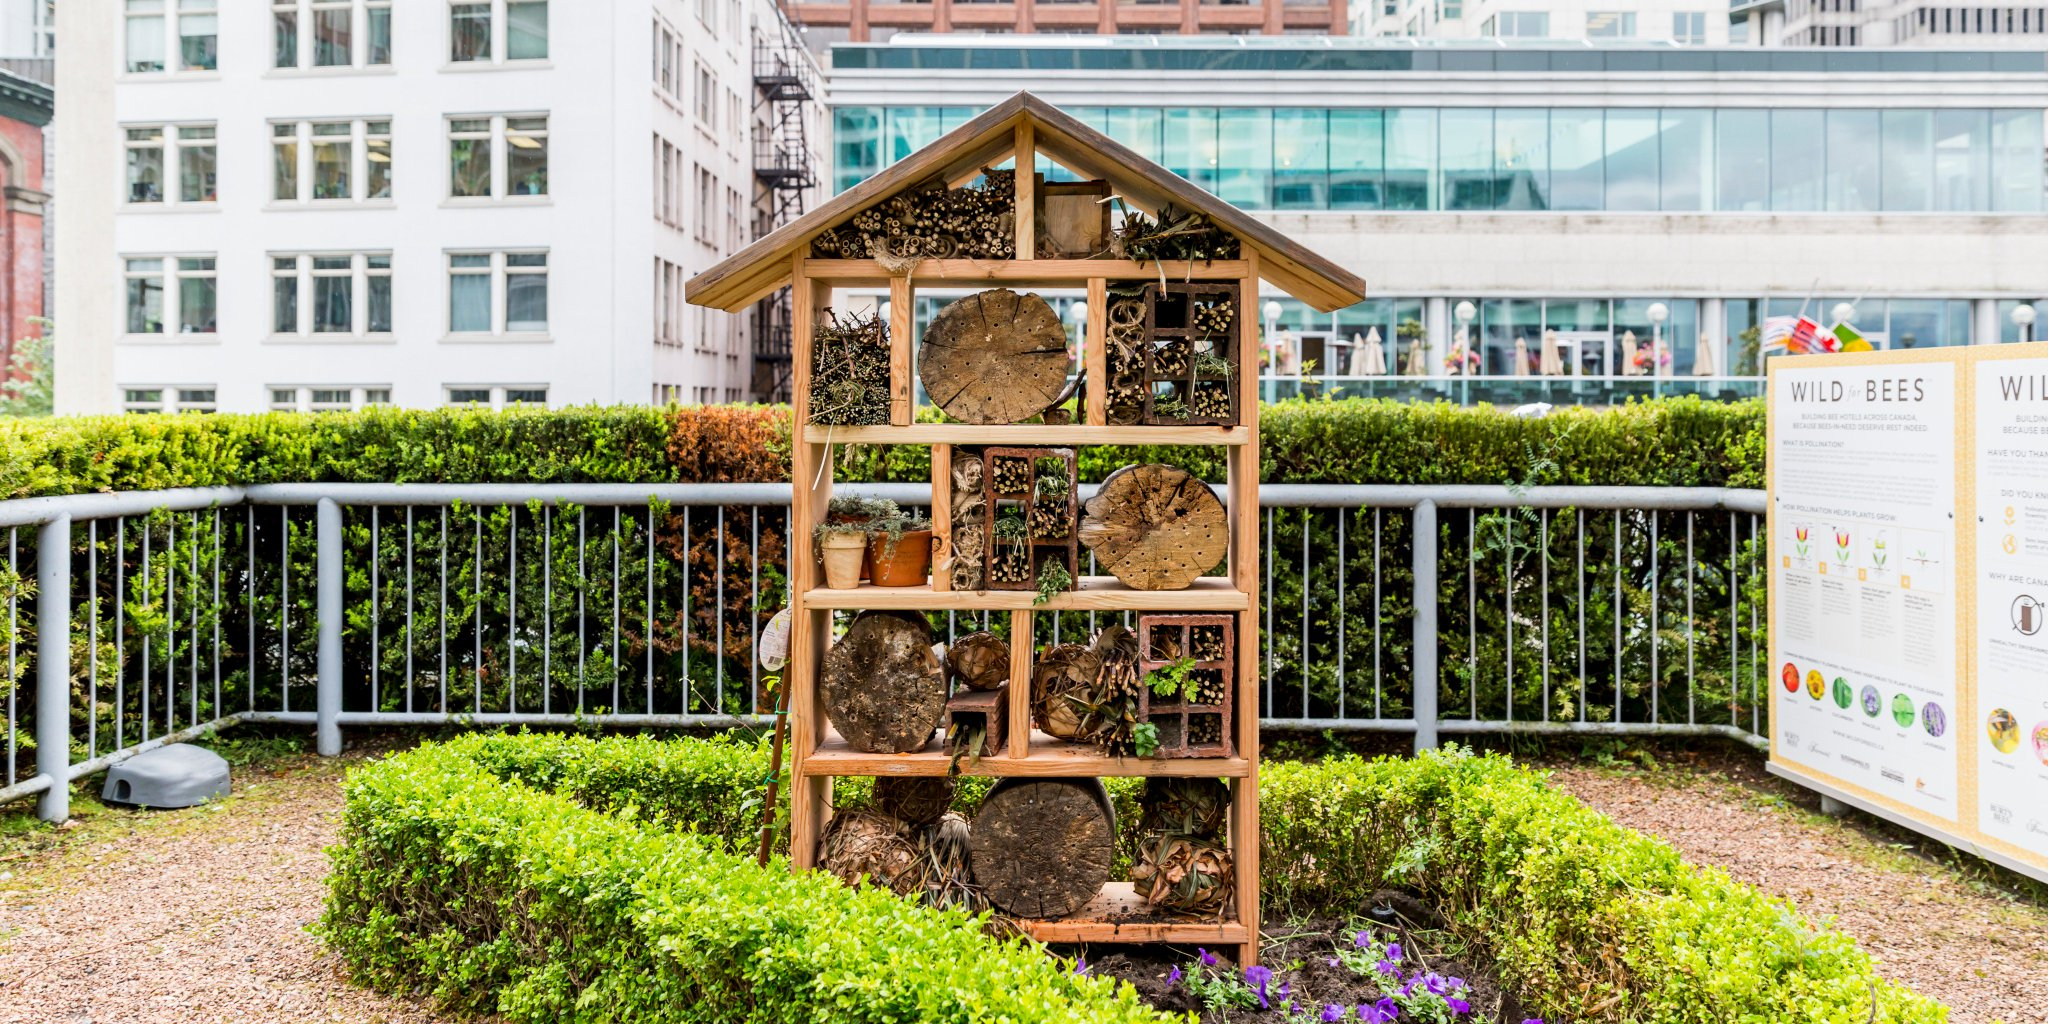 Fairmont Waterfront On Twitter Happy Worldbeeday Did You Know We Re Also A Bee Bee With The Help Of Hives4humanity We Built A Pollinator Hotel In Our Garden To Support Local